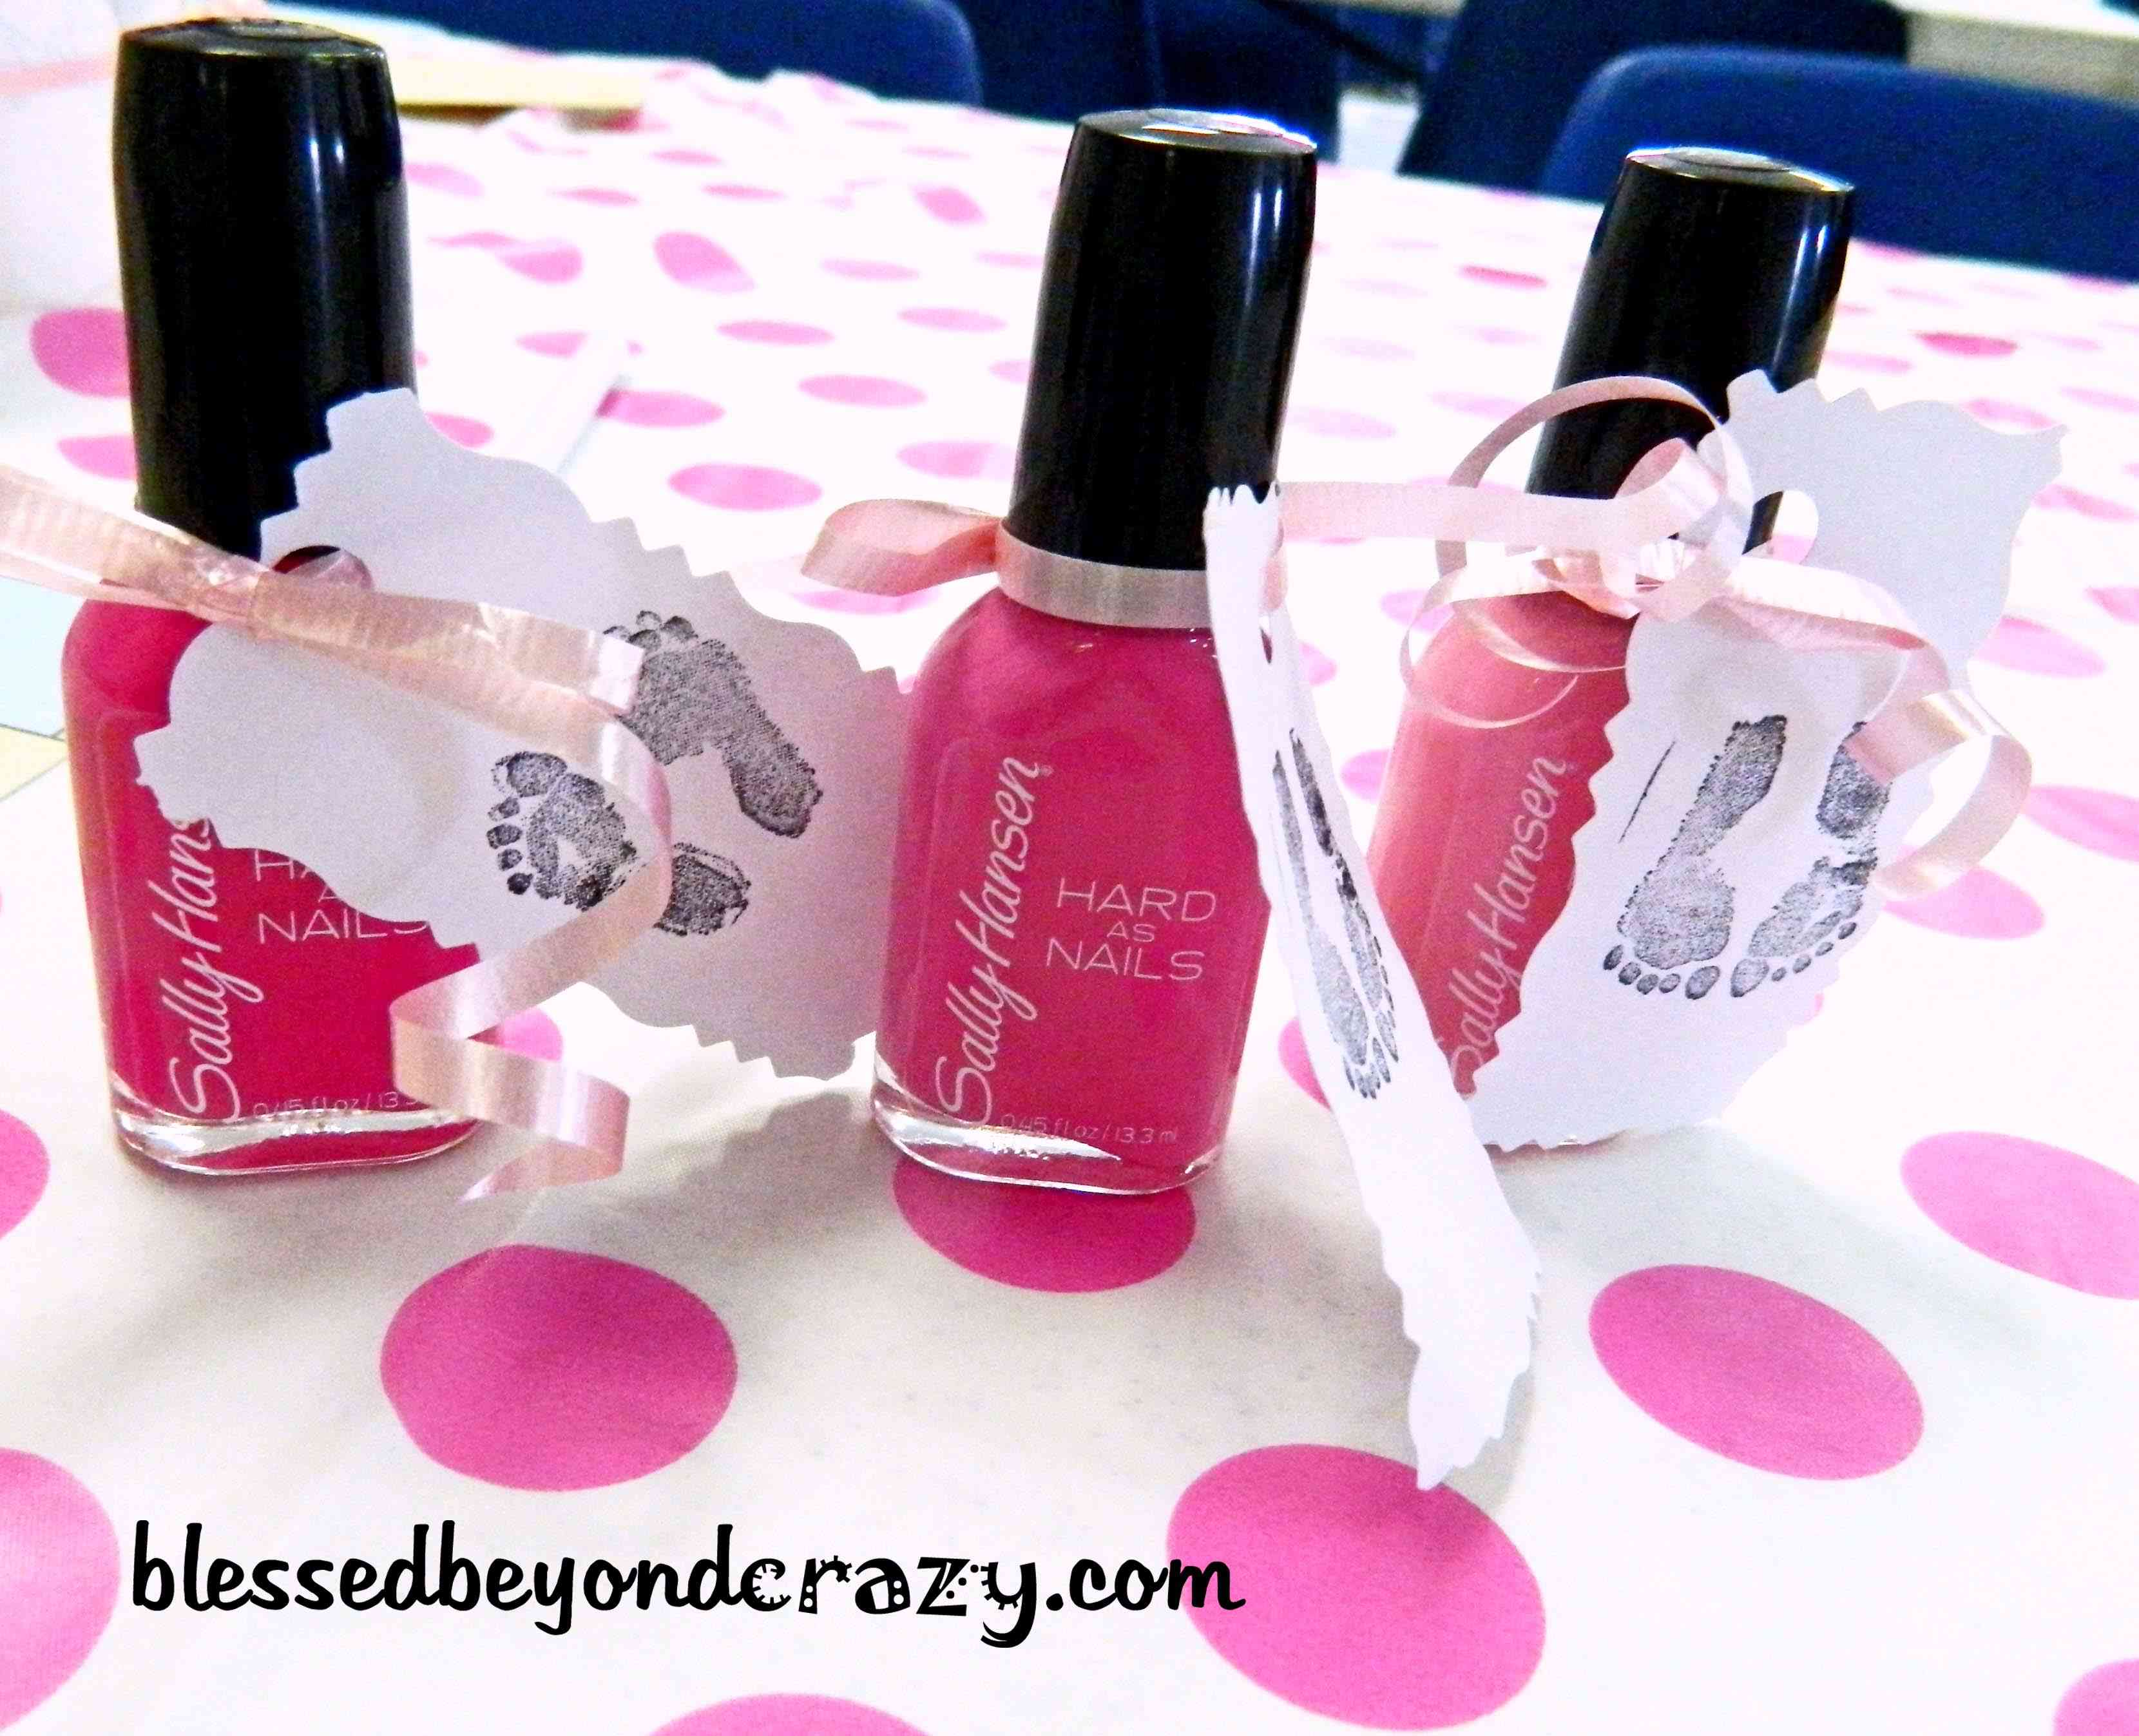 for baby shower prize shower ideas shower games baby shower quotes